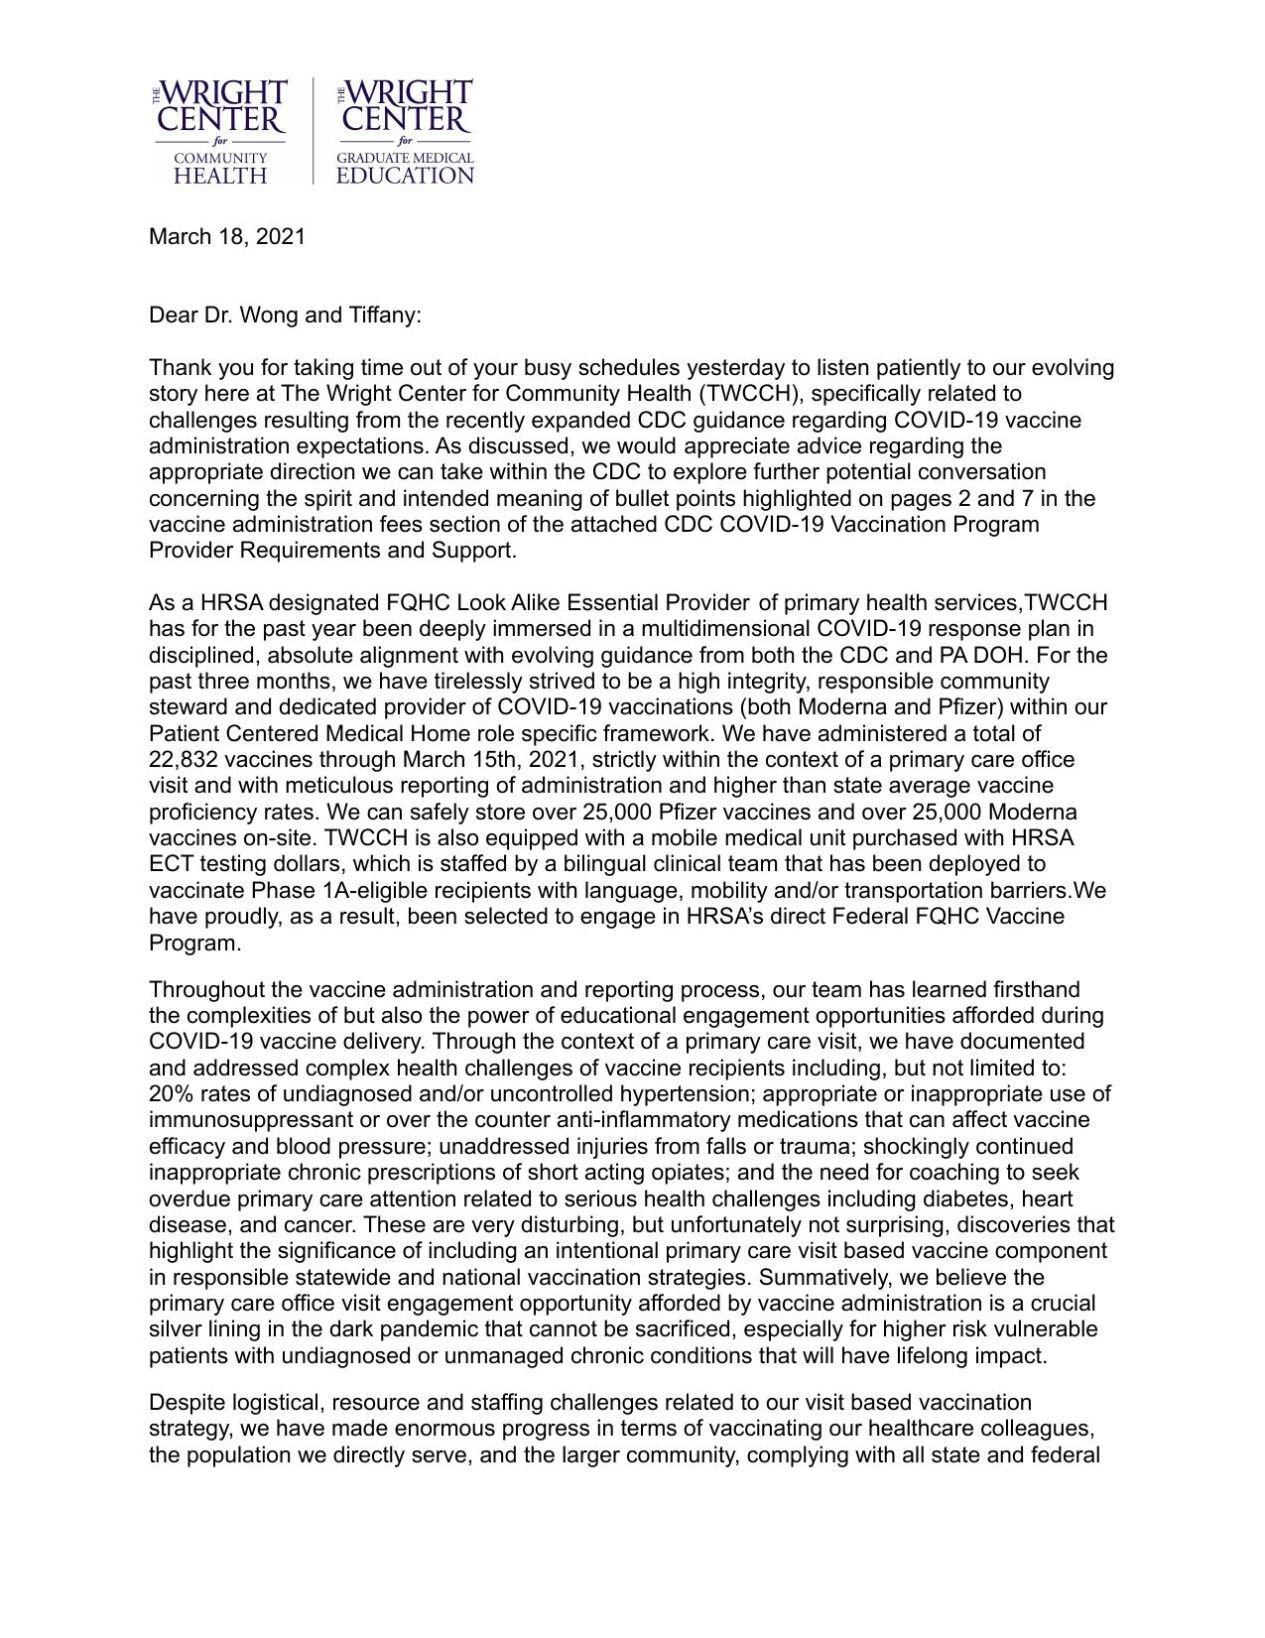 Letter to CDC